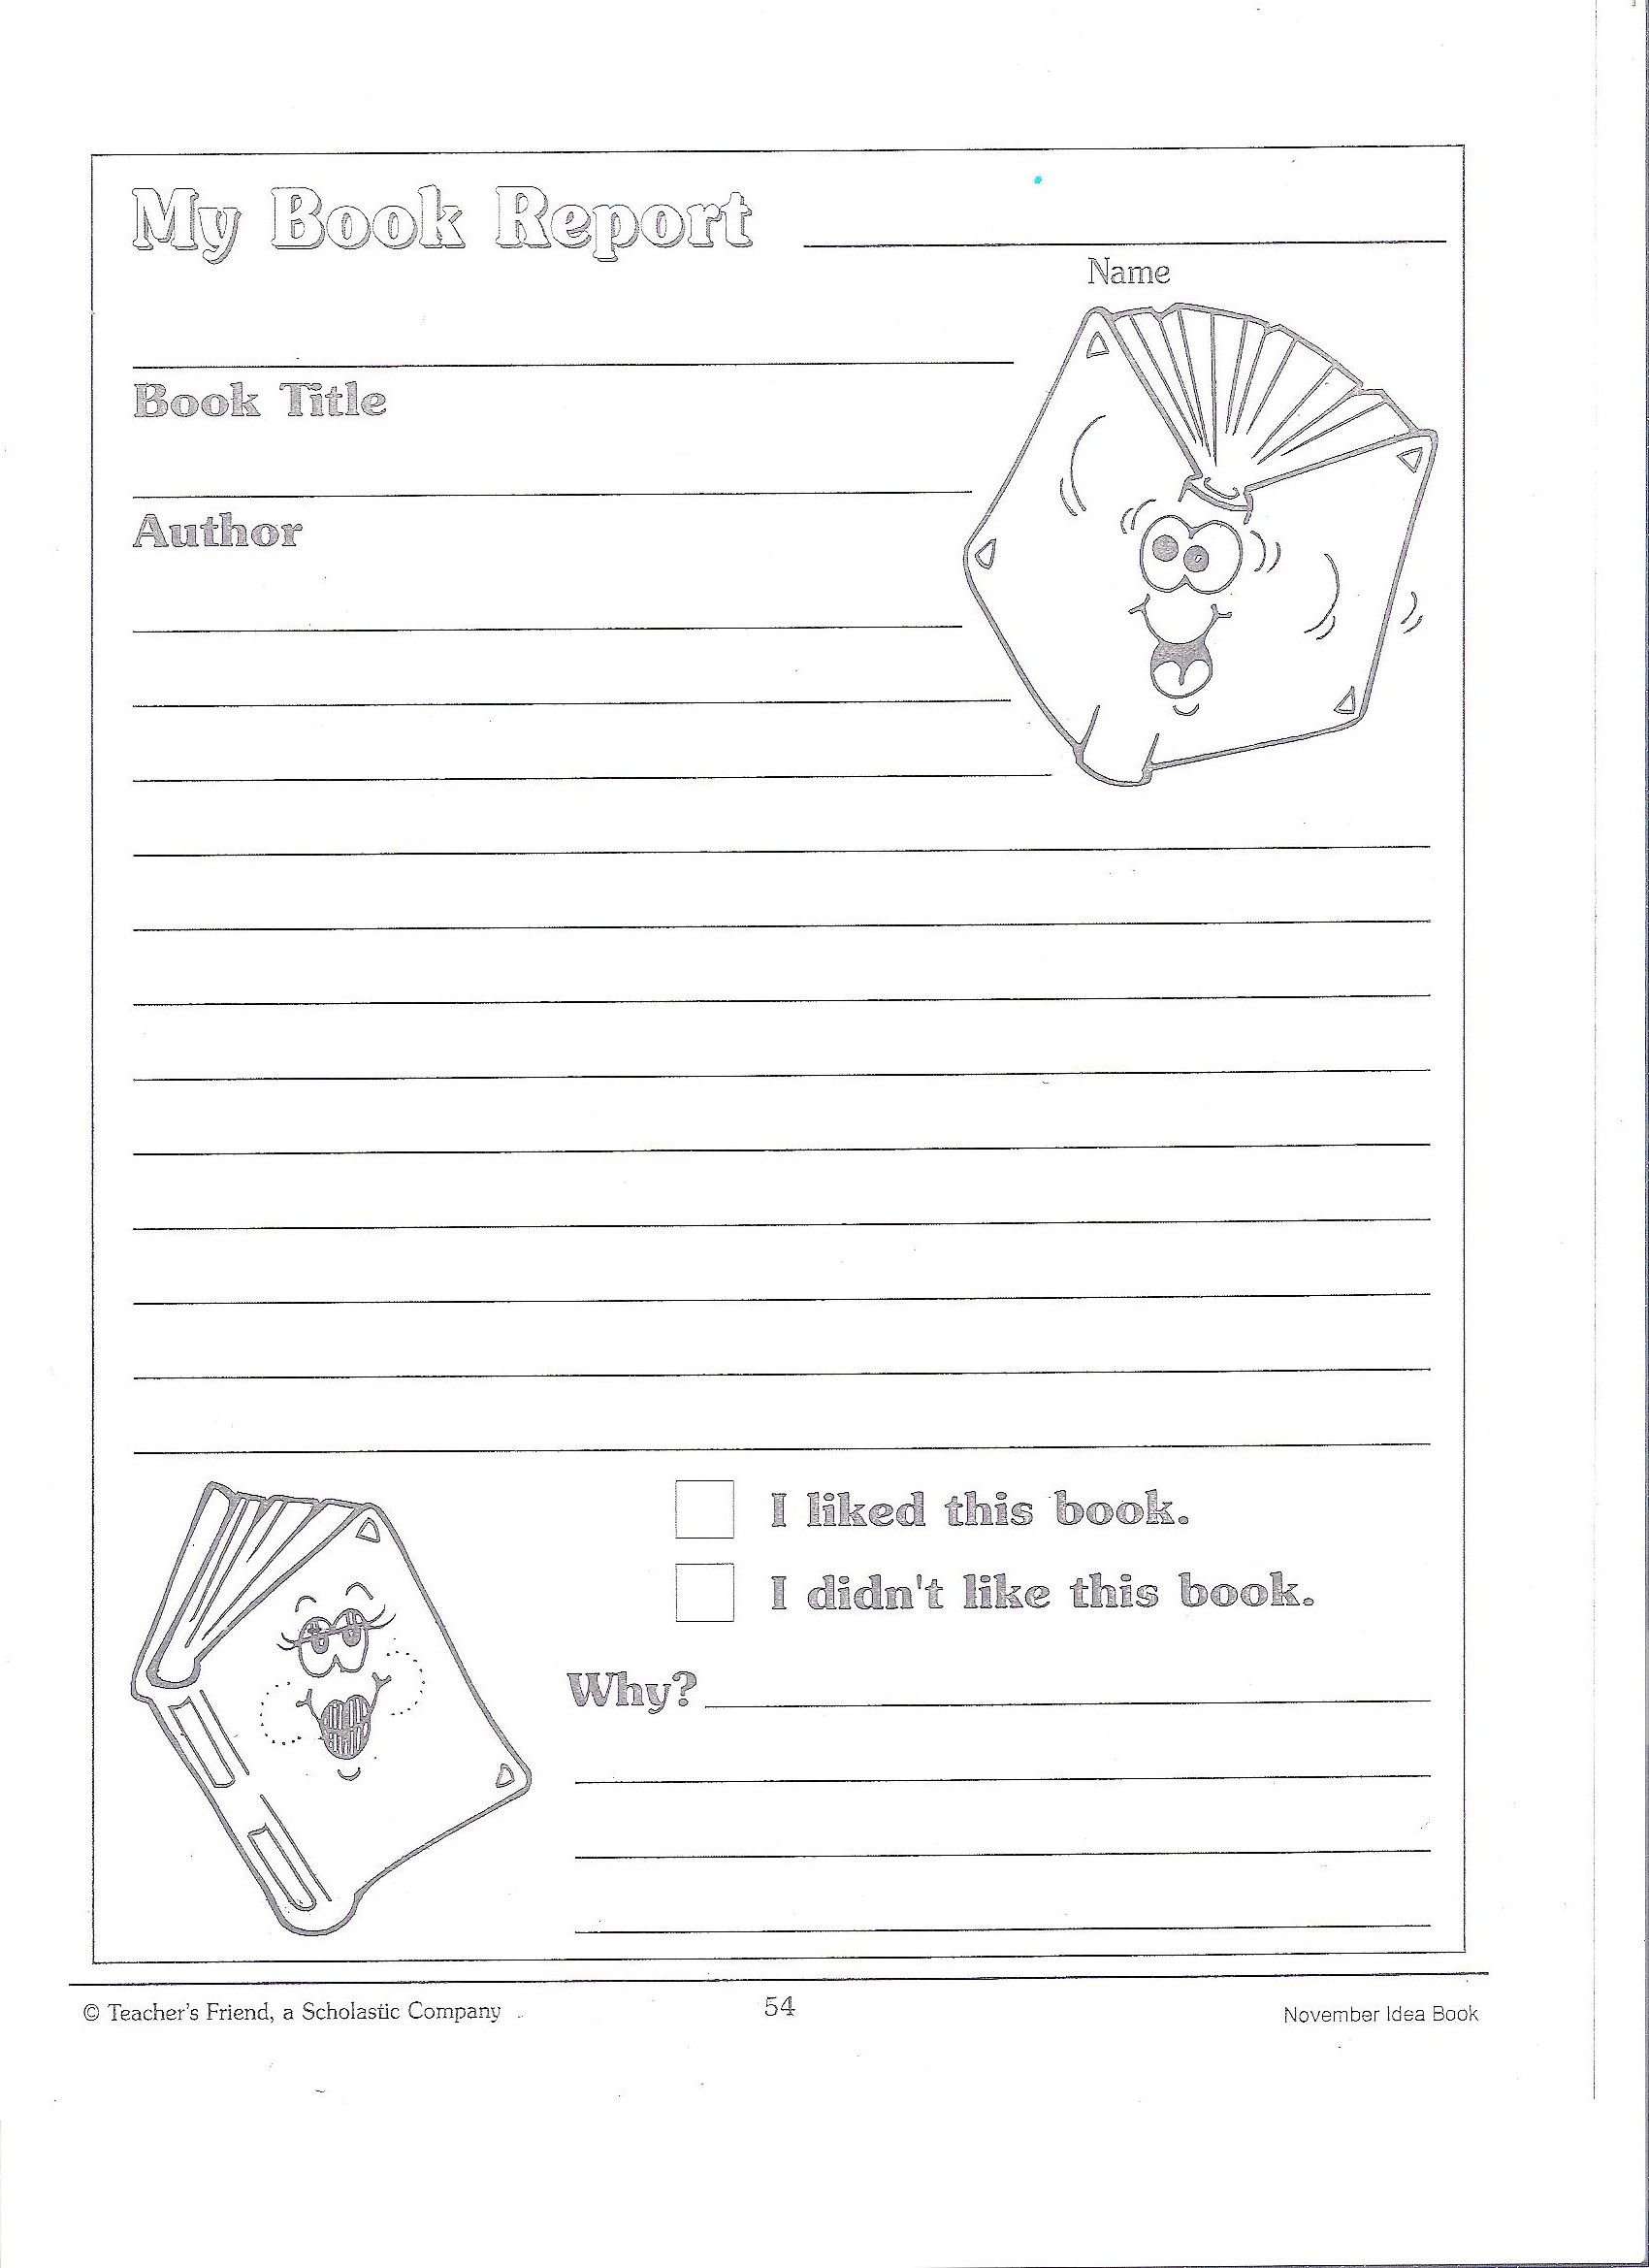 Printable Book Report Forms Miss Murphy S 1st And 2nd Grade Webpage